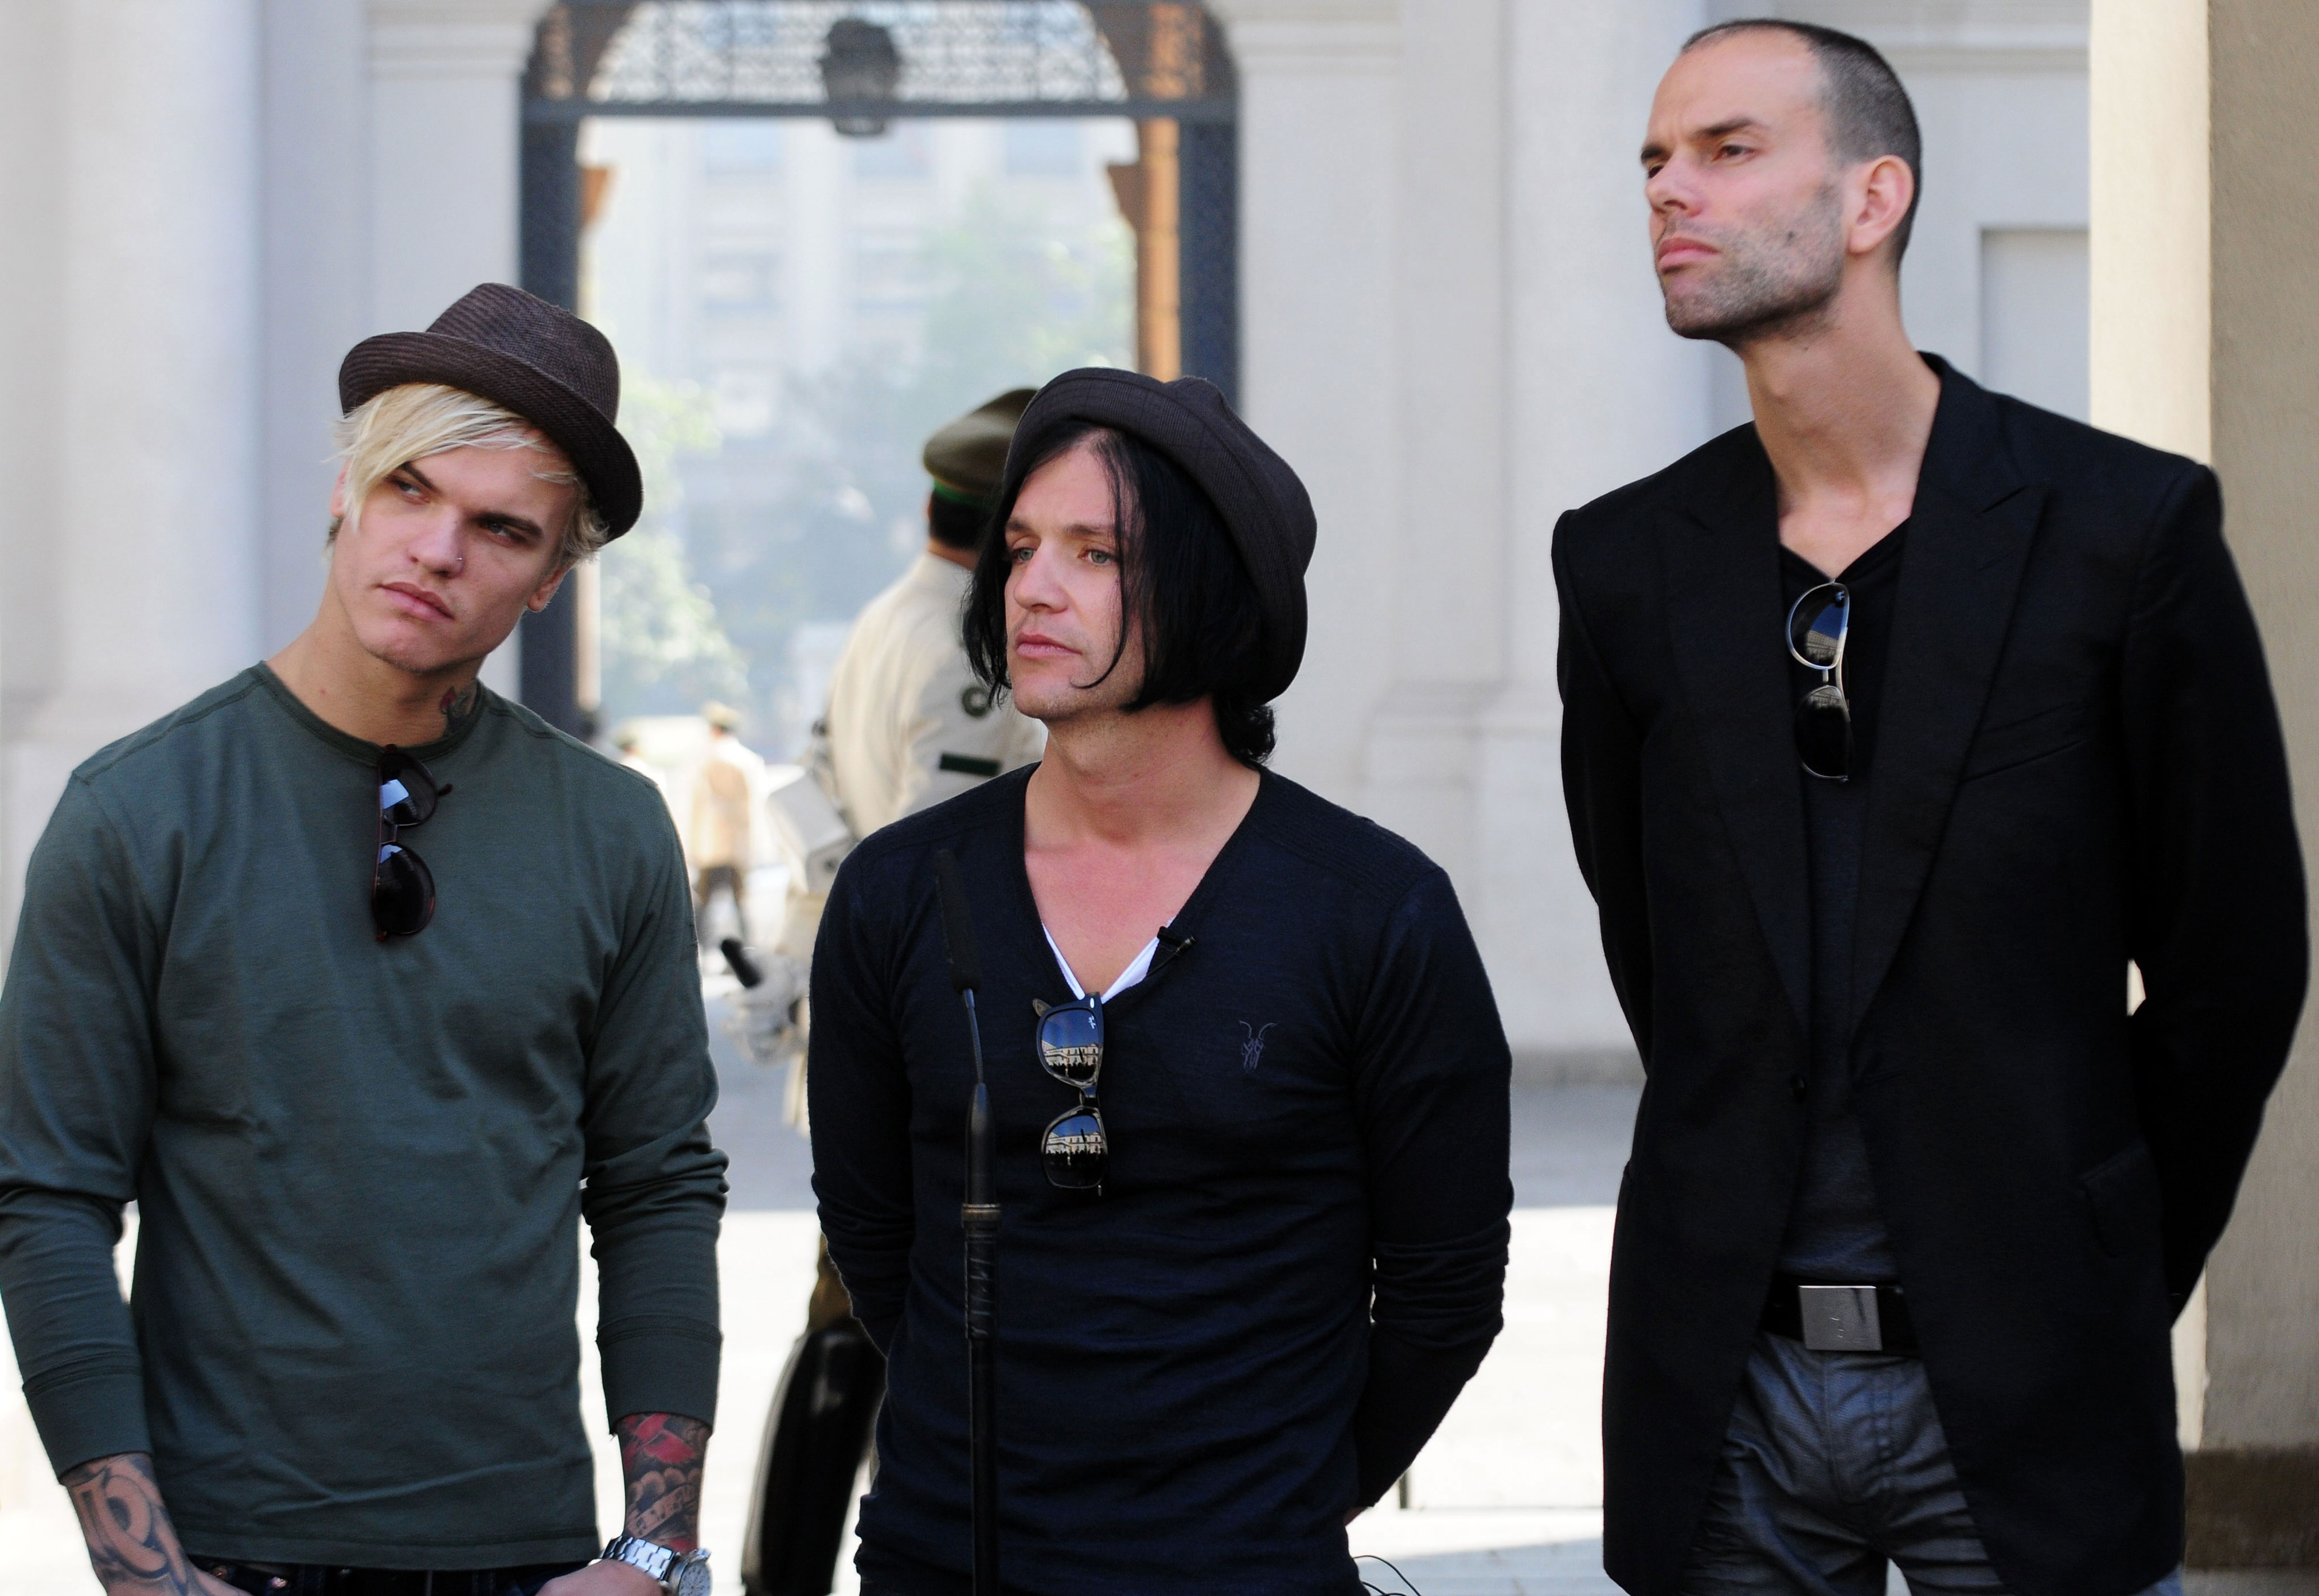 Placebo Full hd wallpapers